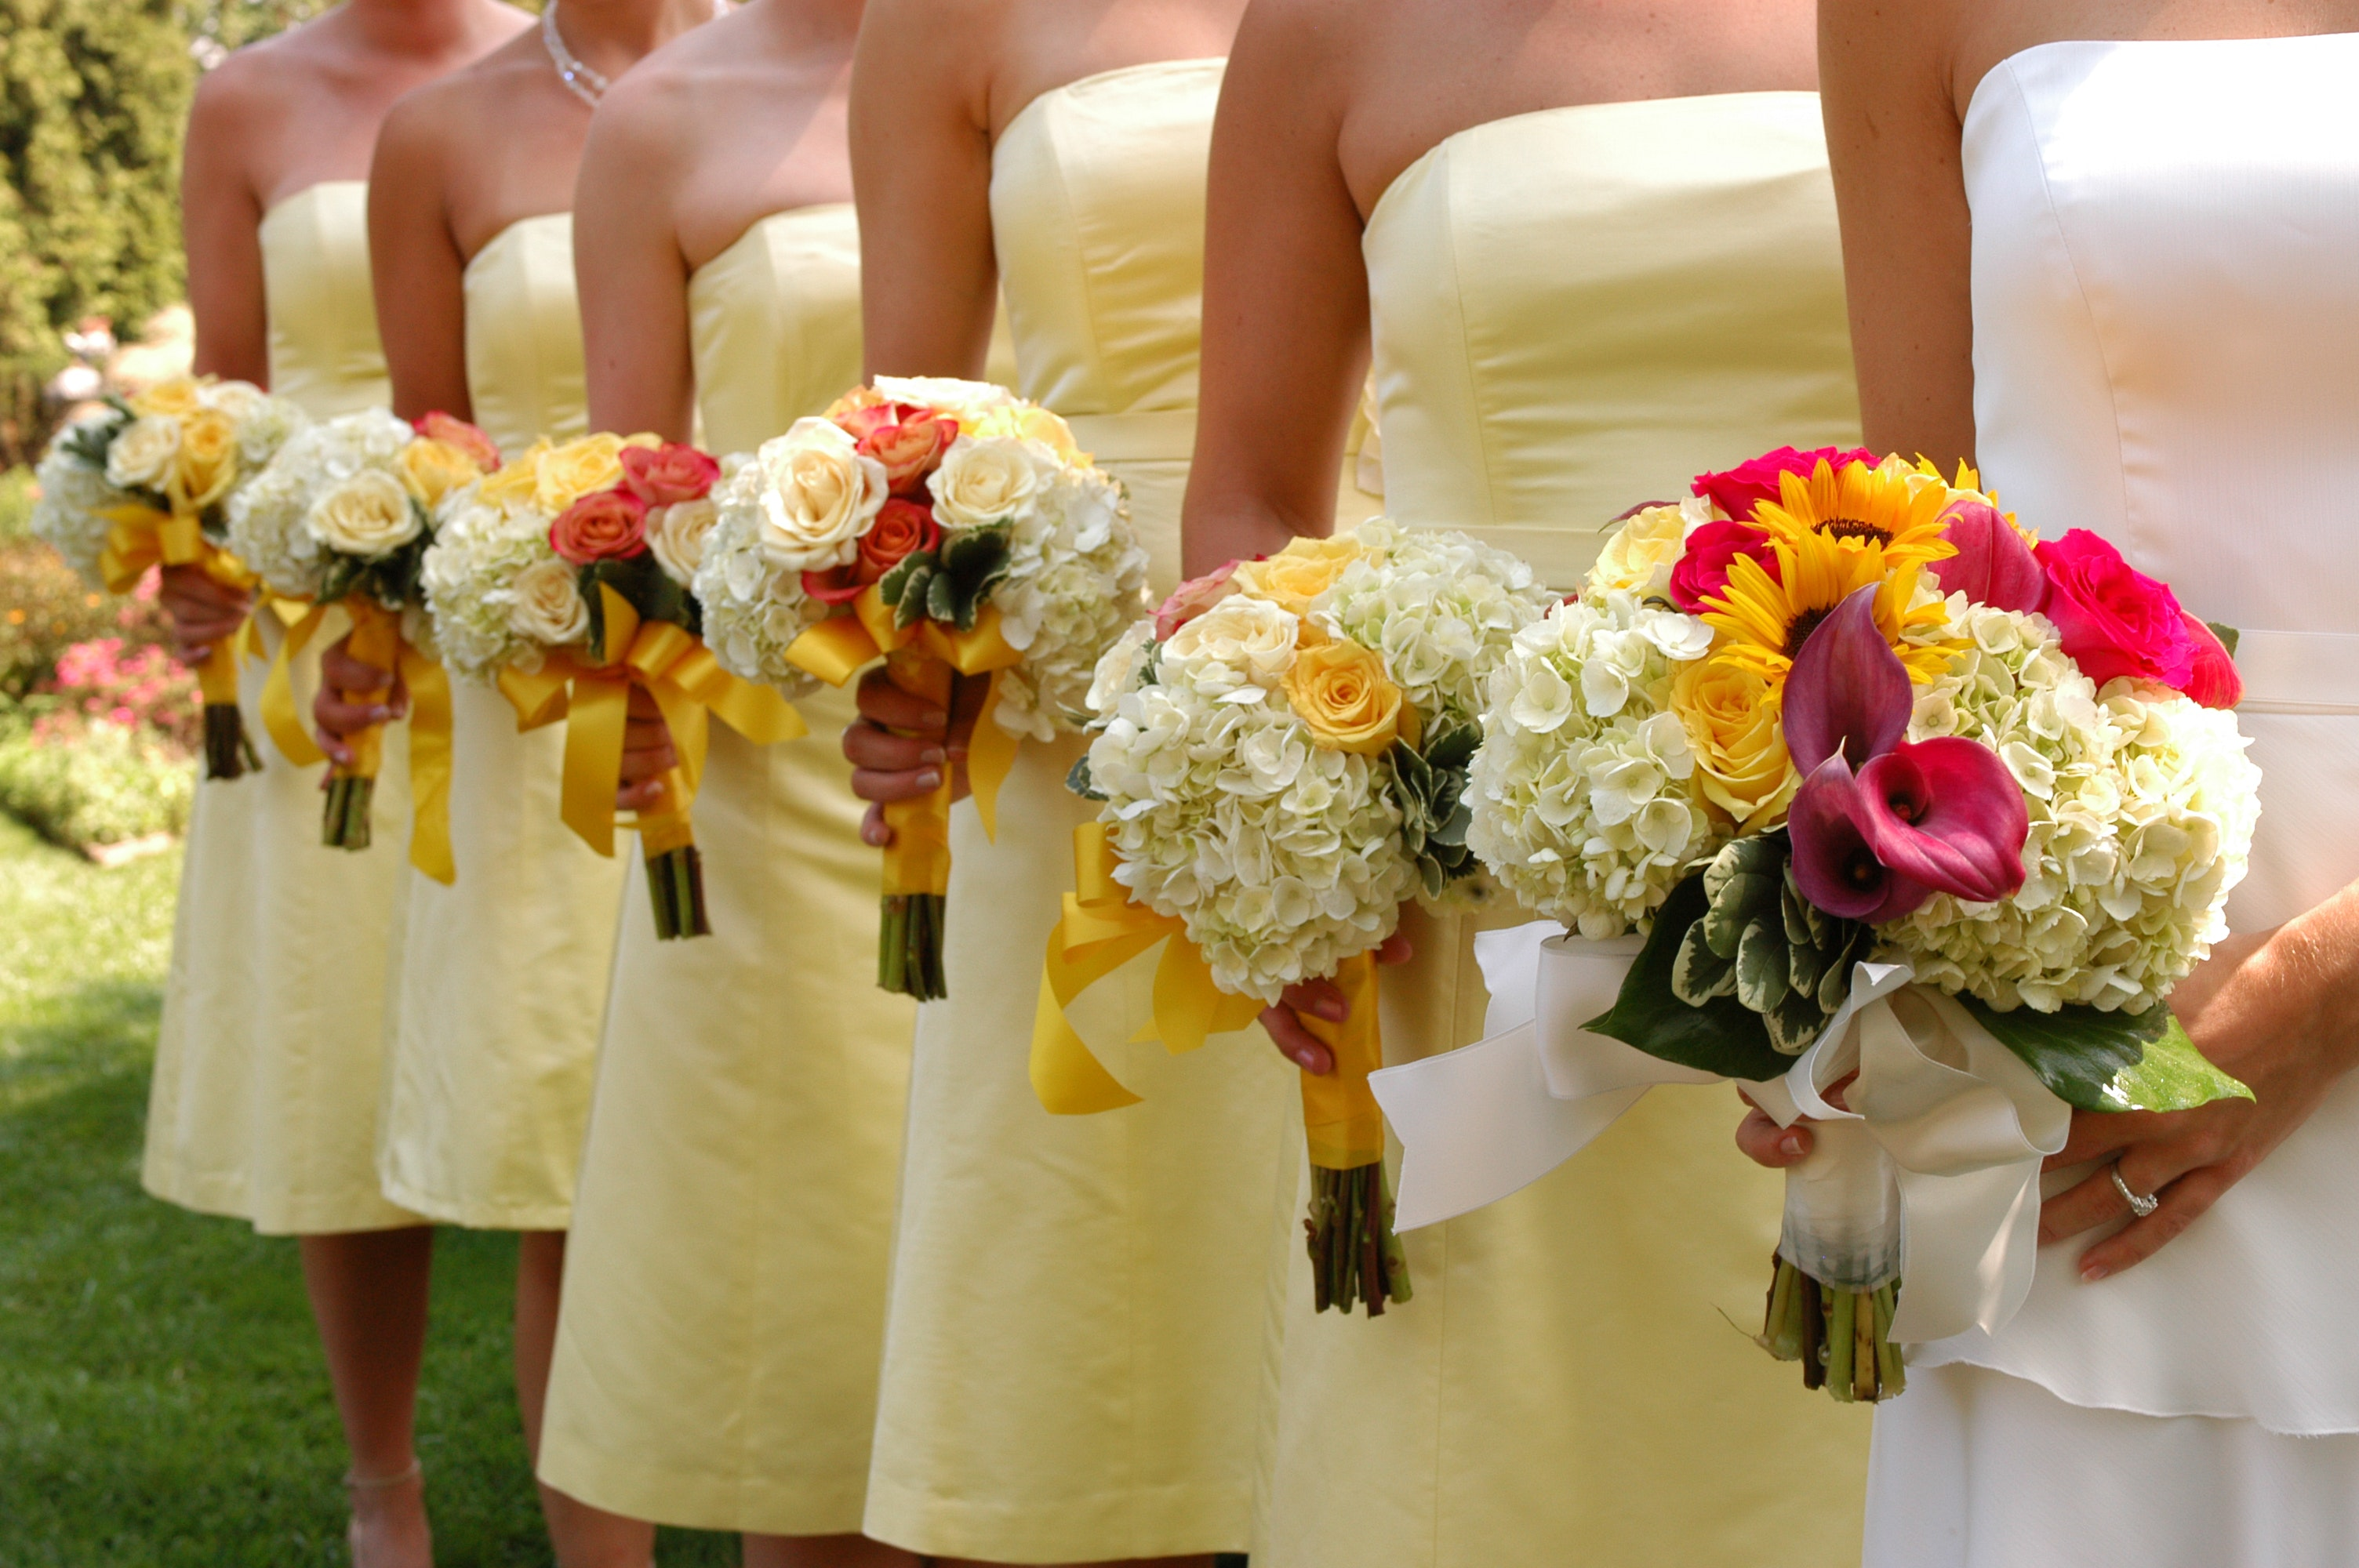 A very chill email to my 47 gorgeous bridesmaids mcsweeneys a very chill email to my 47 gorgeous bridesmaids mcsweeneys internet tendency m4hsunfo